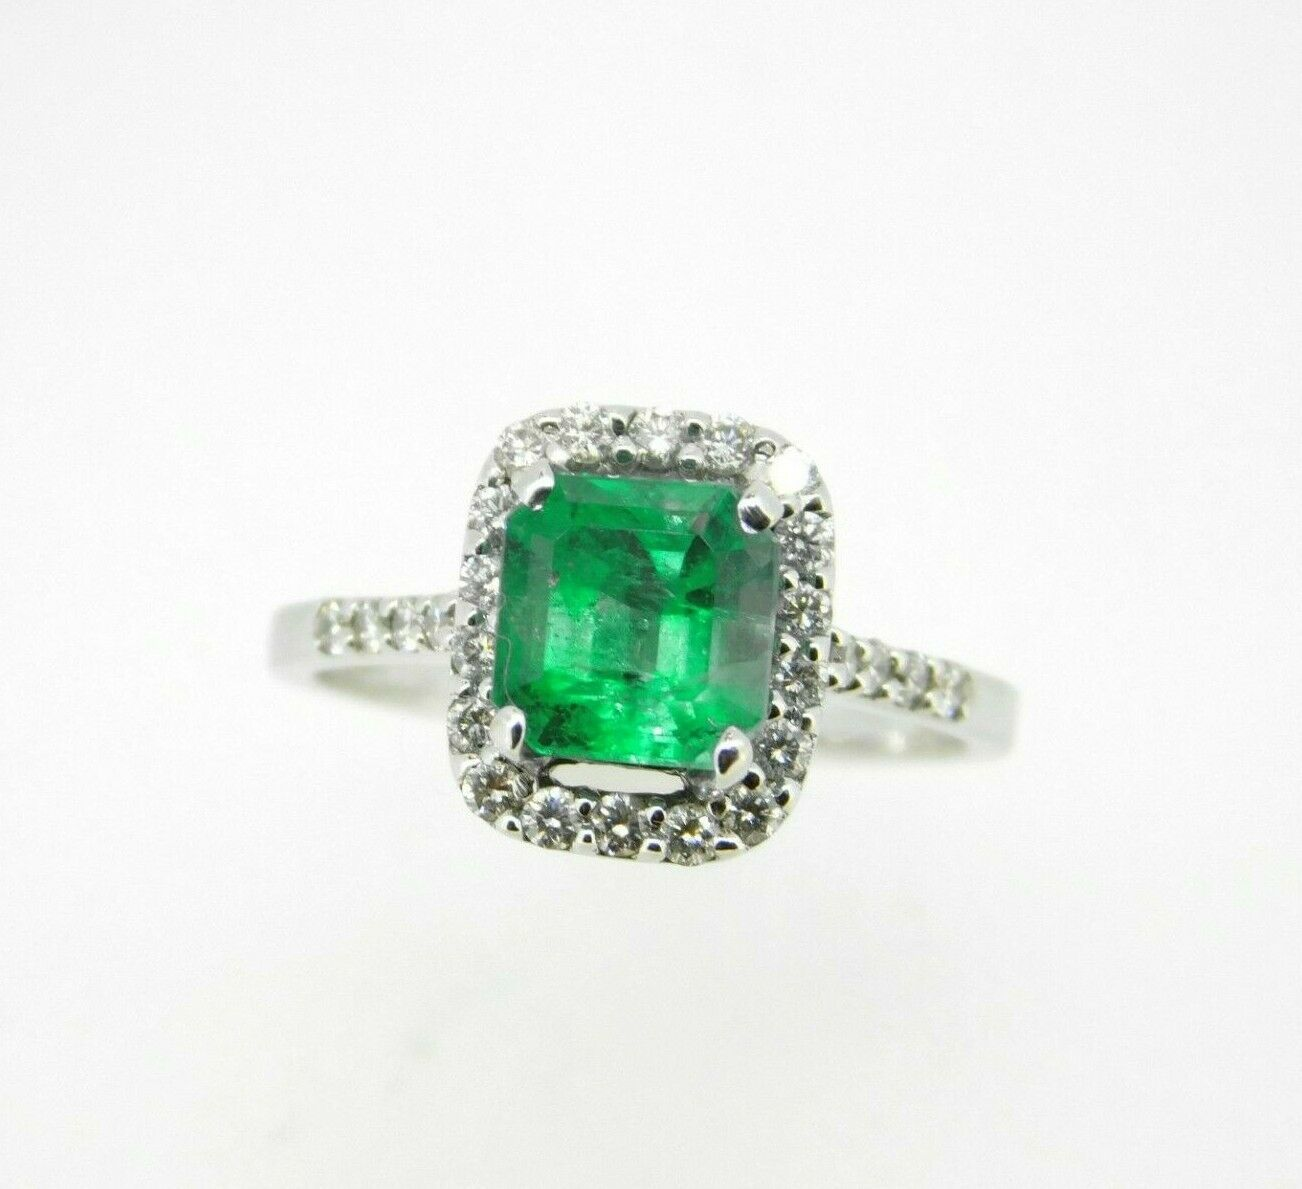 Primary image for 18k Gold 1 1/2 Carat Genuine Natural Emerald and Diamond Halo Ring (#J5055)